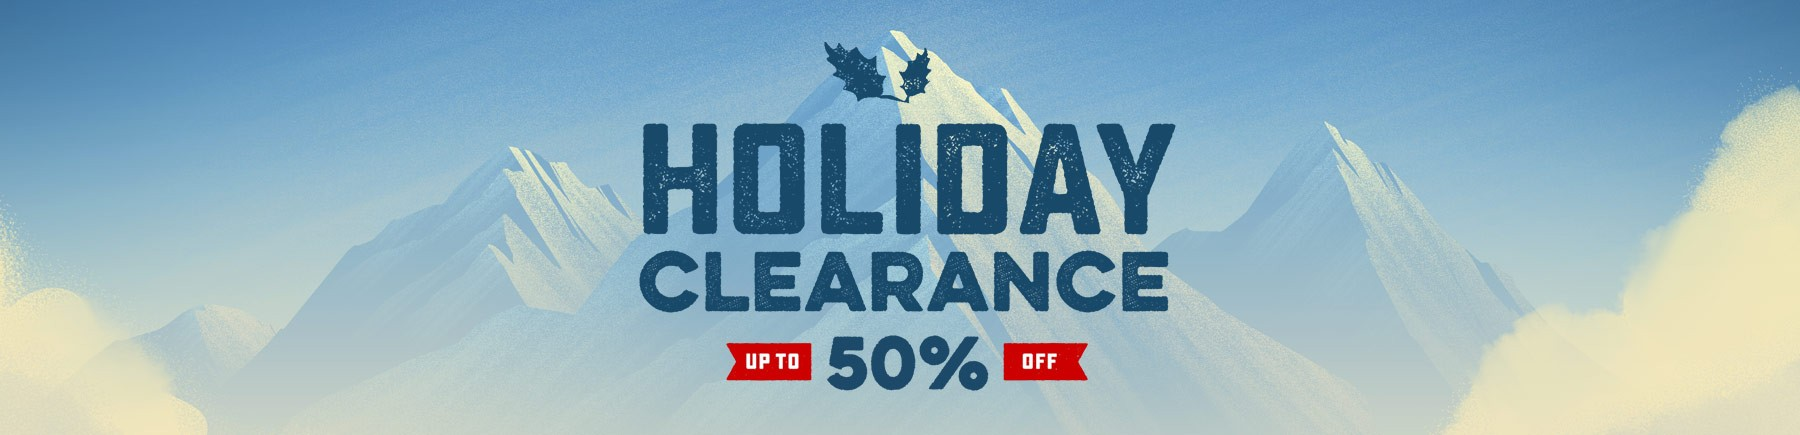 Bargain - Up to 50% OFF - Holiday Clearance @ Rei